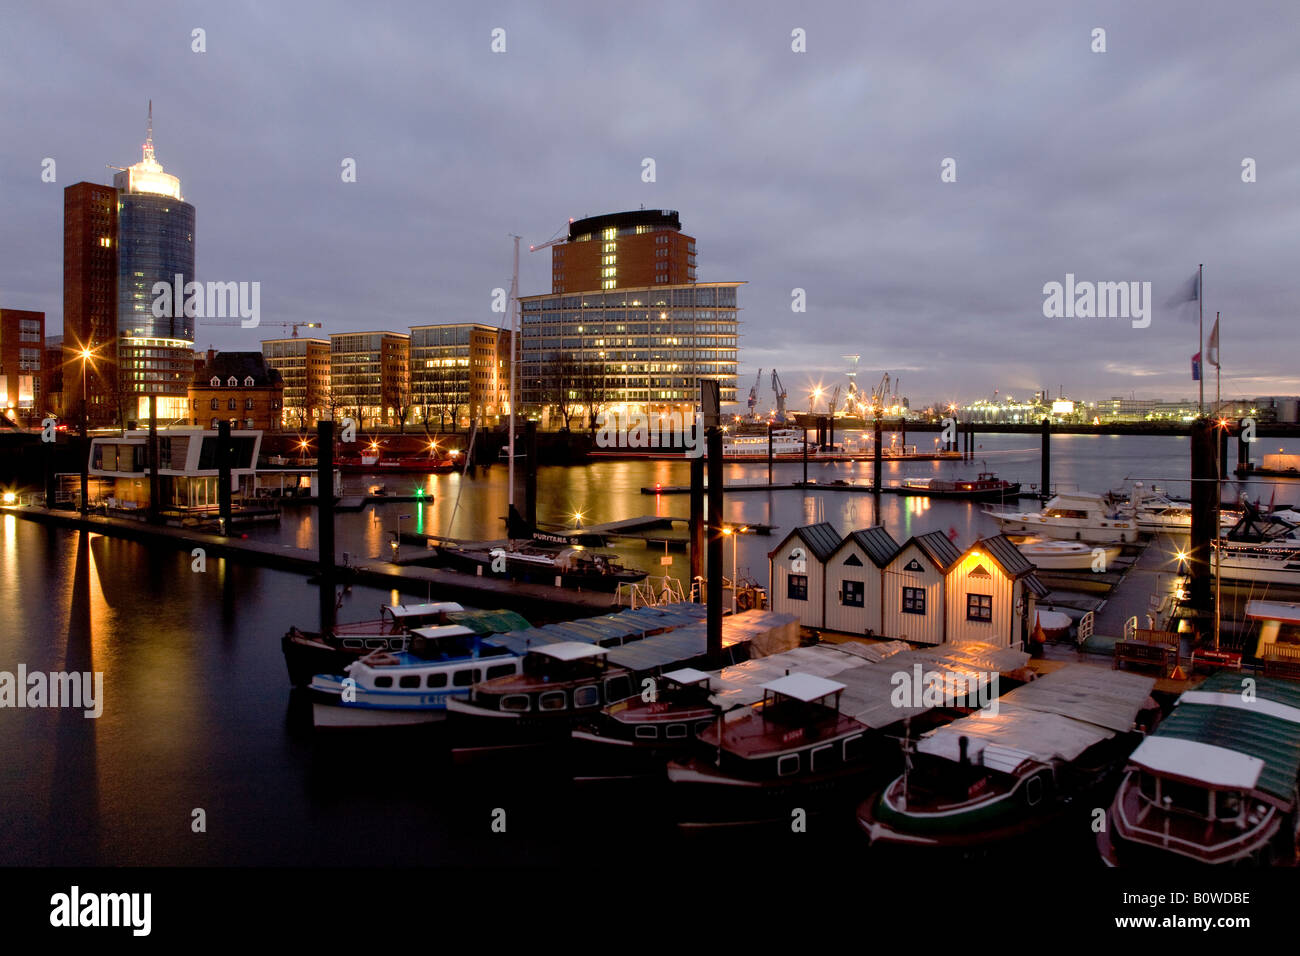 Launches in the harbour of Speicherstadt, modern architecture on the Kehrwiederspitze, Hamburg, Germany, Europe - Stock Image